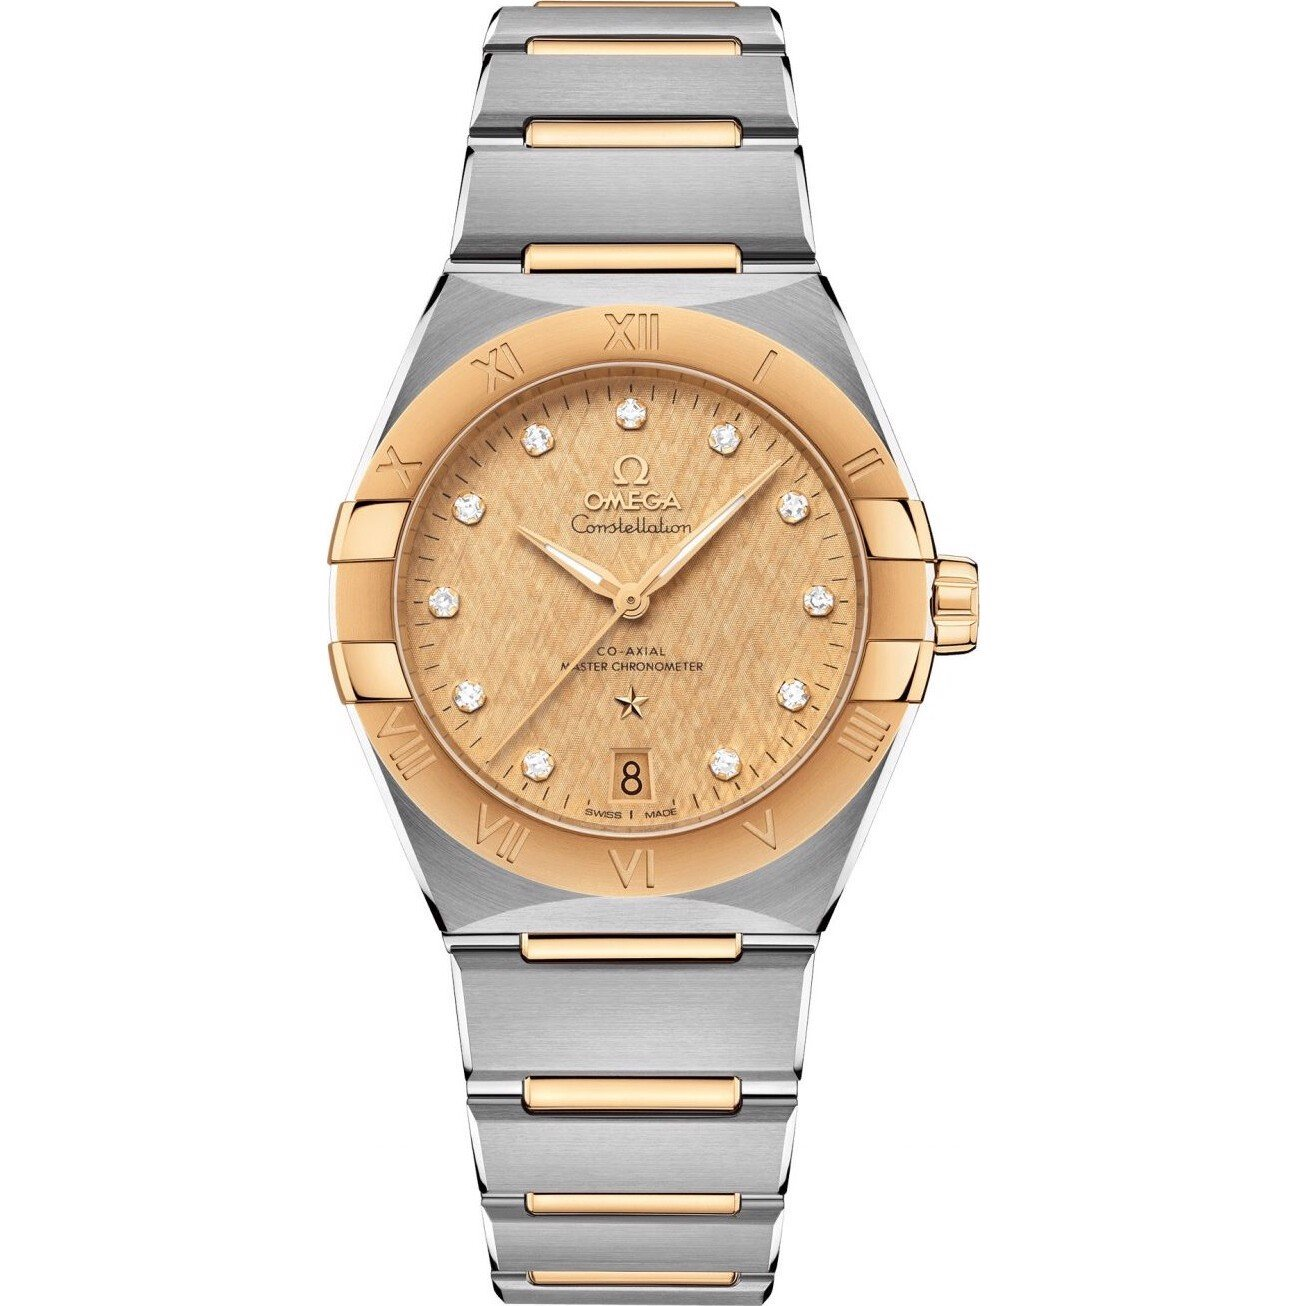 Omega Constellation 131.20.36.20.58.001 Co Axial 36mm